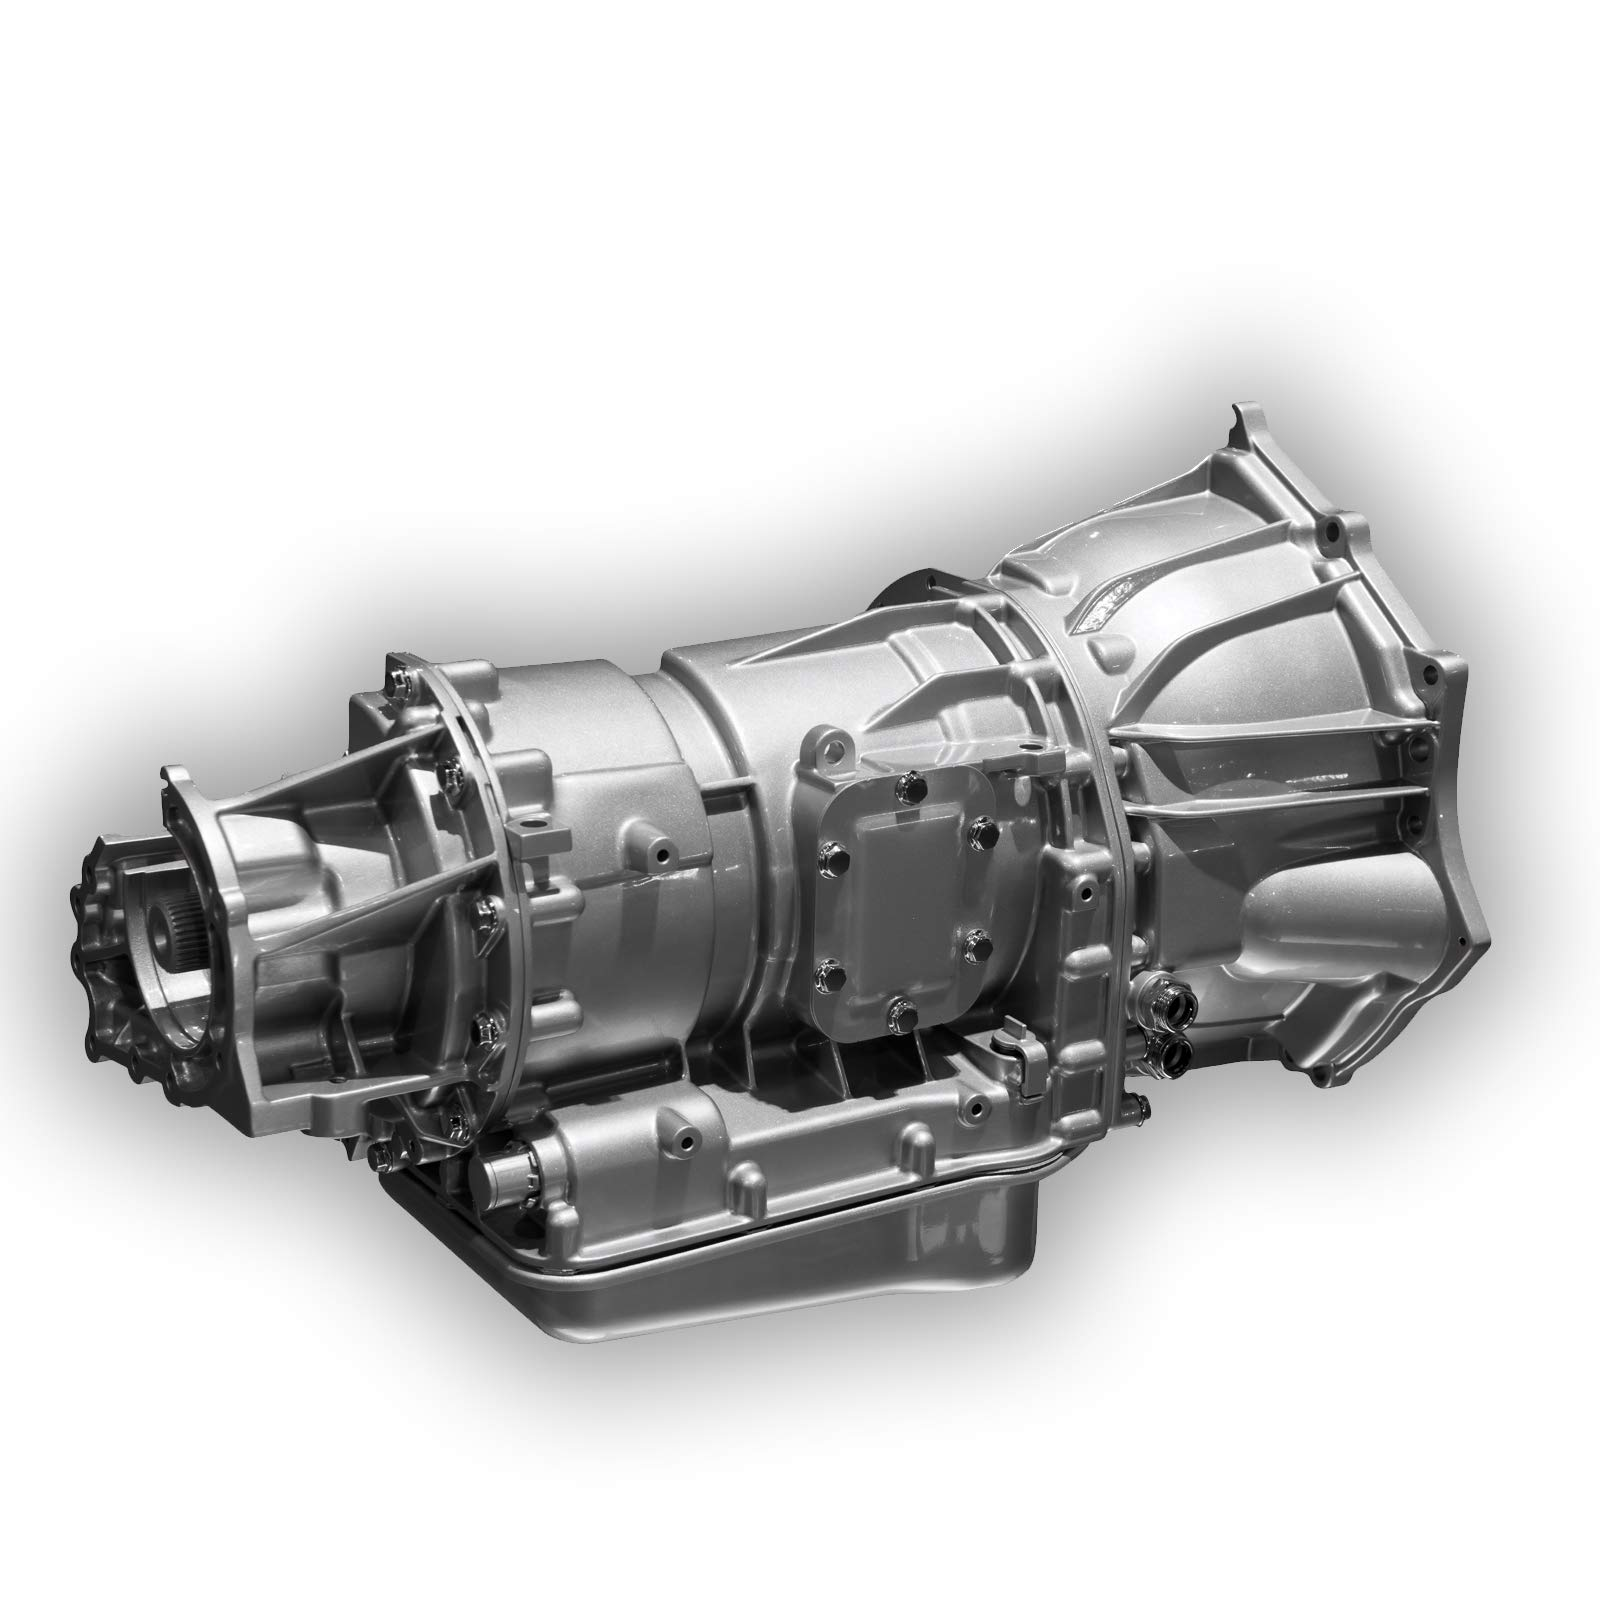 Detroit Axle - Rebuilt 5-Speed Automatic Transmission 545RFE for 05-06 Jeep Liberty - CALL US OR SEND A EMAIL WITH YOUR VIN FOR PROPER TRANS FITMENT